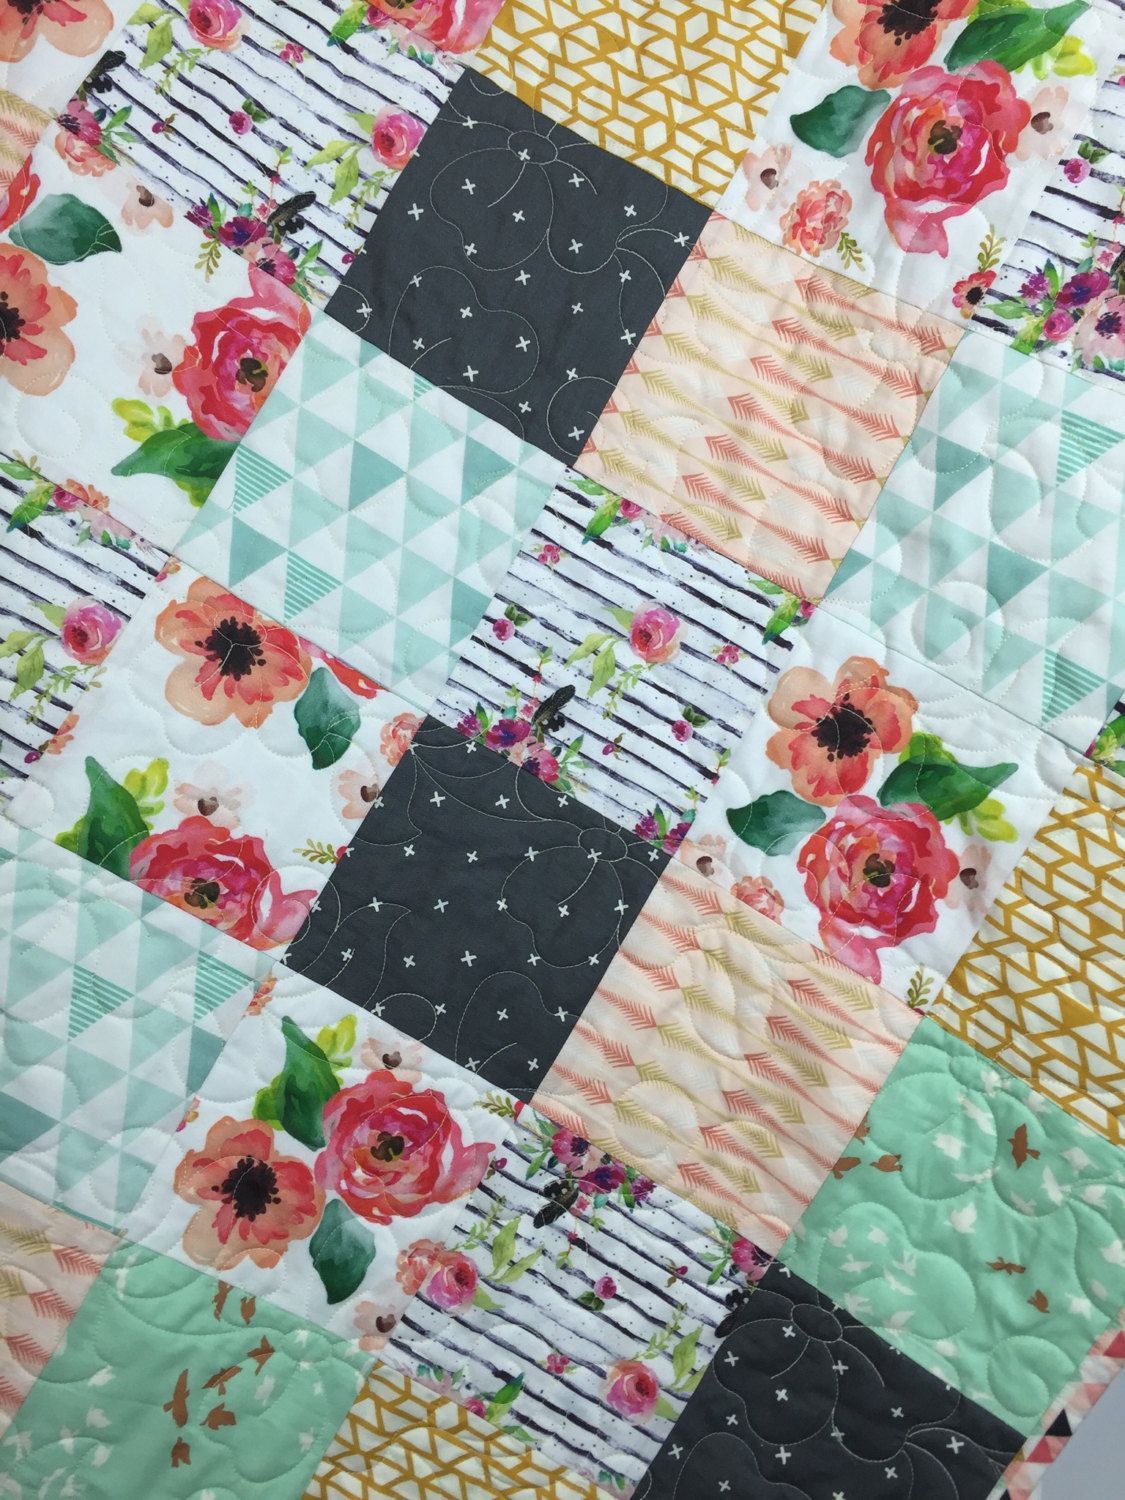 Modern floral baby girl nursery quilt, floral girl crib bedding, peach, coral mint baby girl nursery blanket flowers nursery quilt by TinRoofQuilters on Etsy